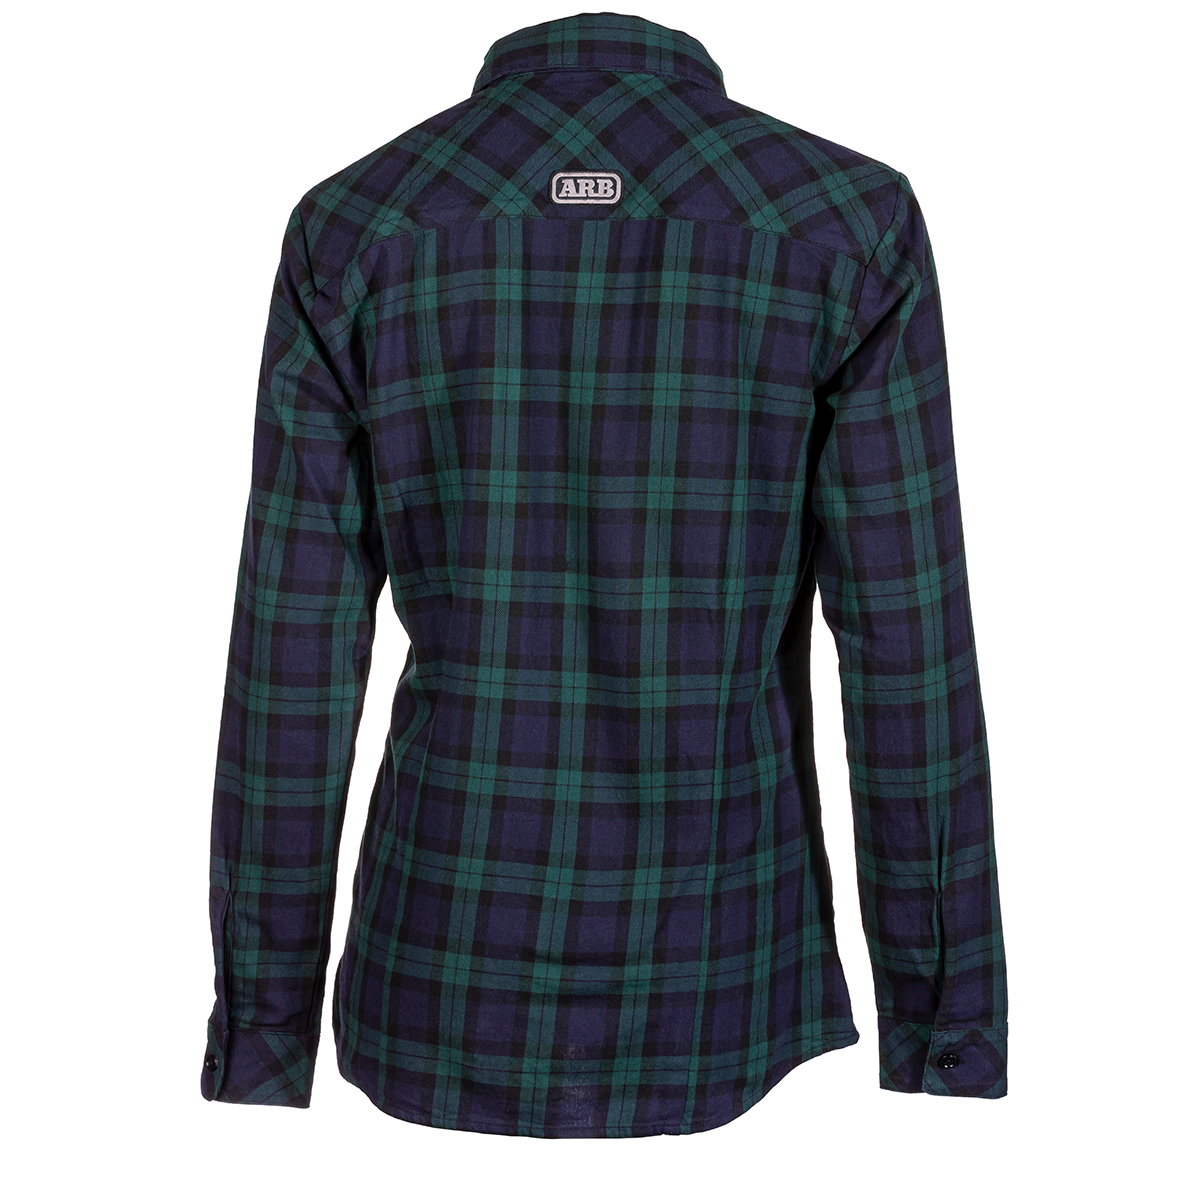 ARB Women's Explorer Check Shirt